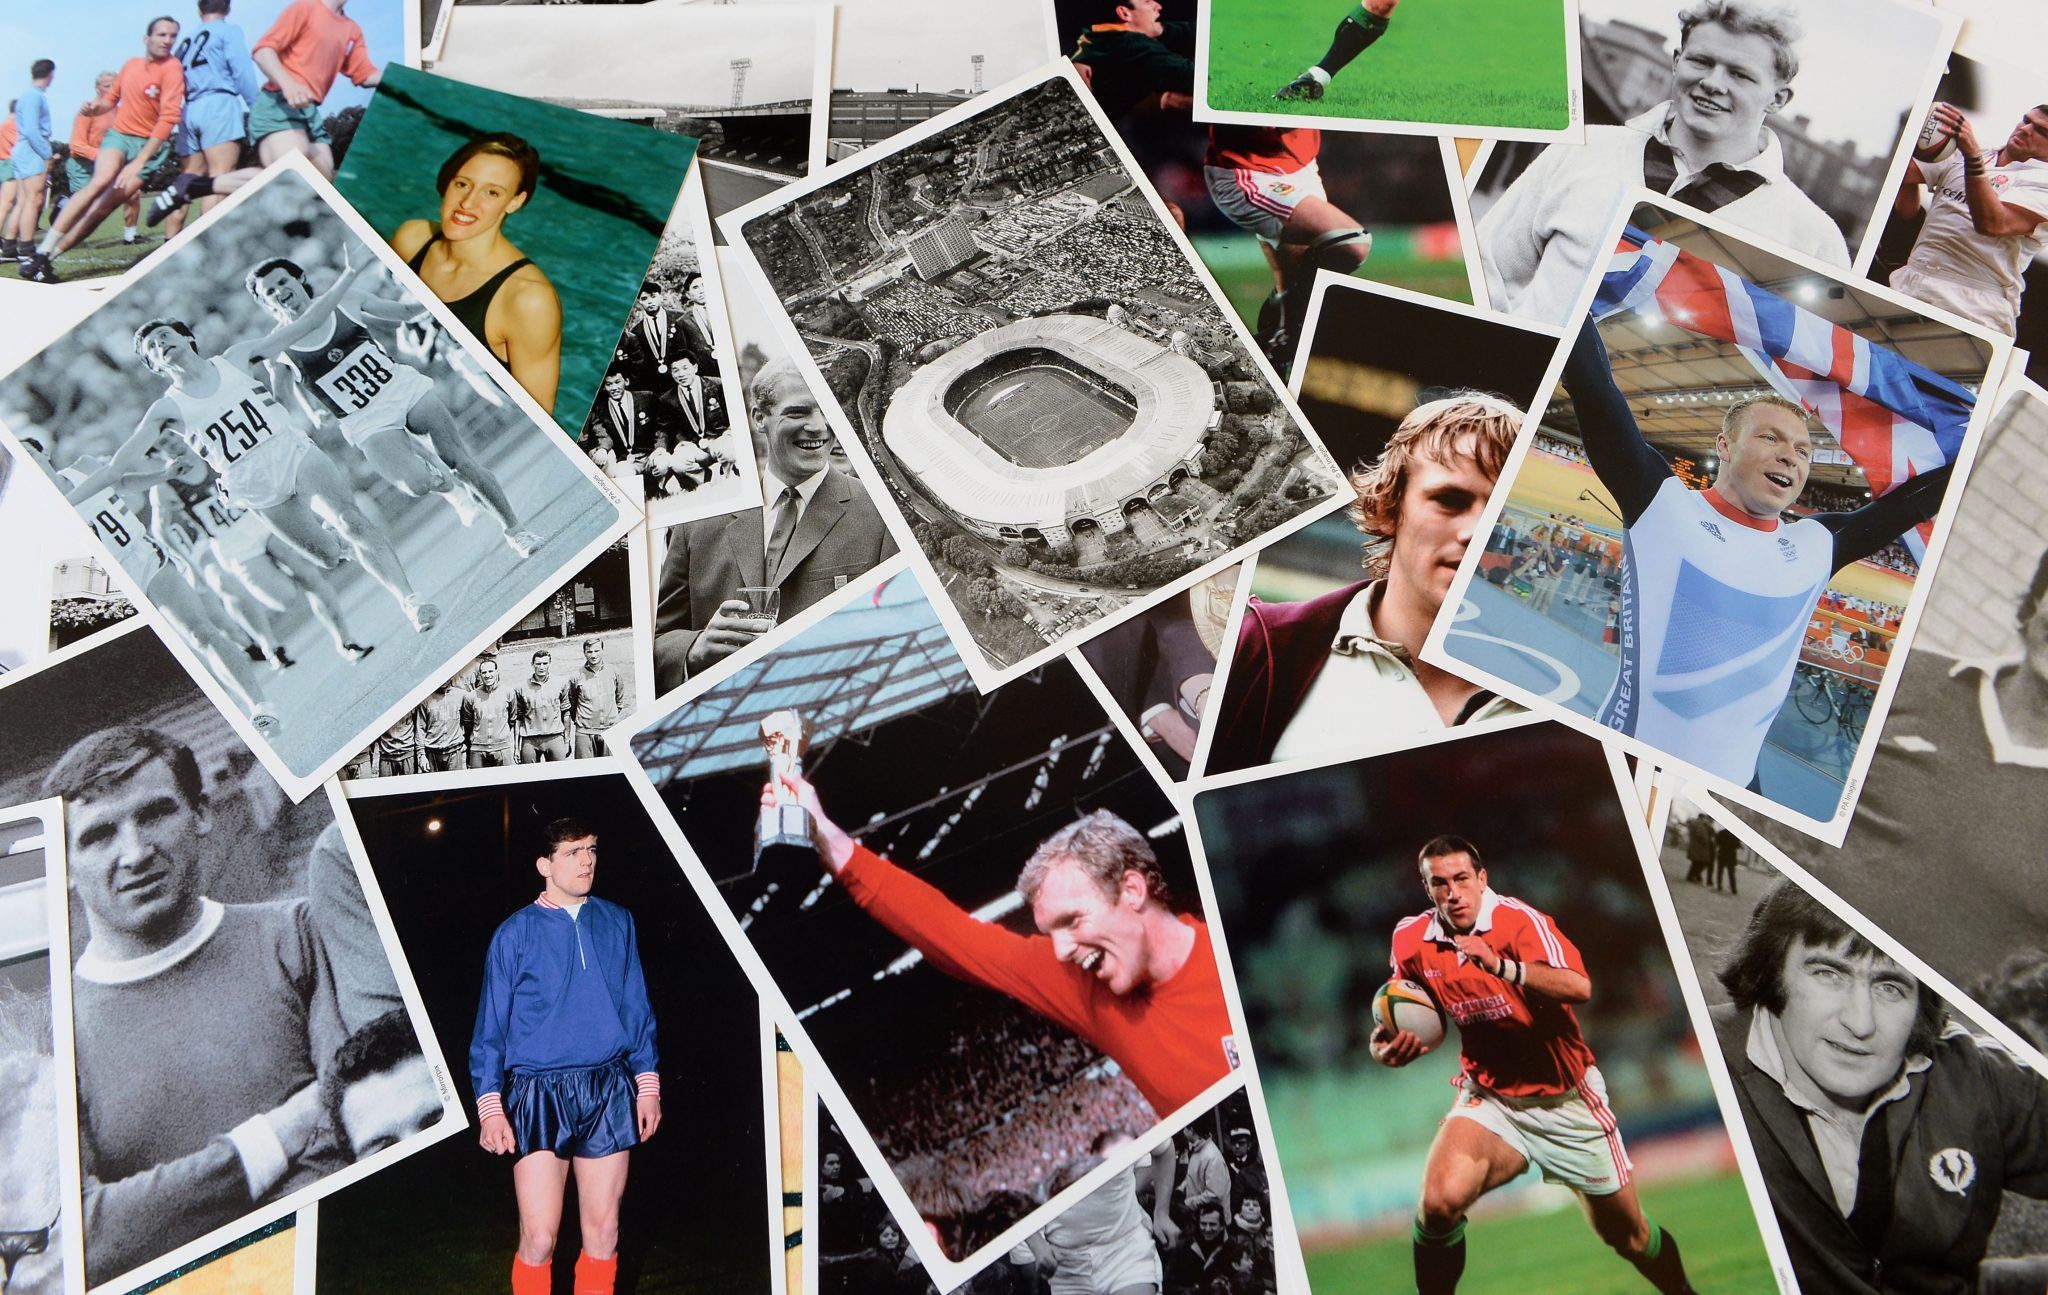 Montage of sport images